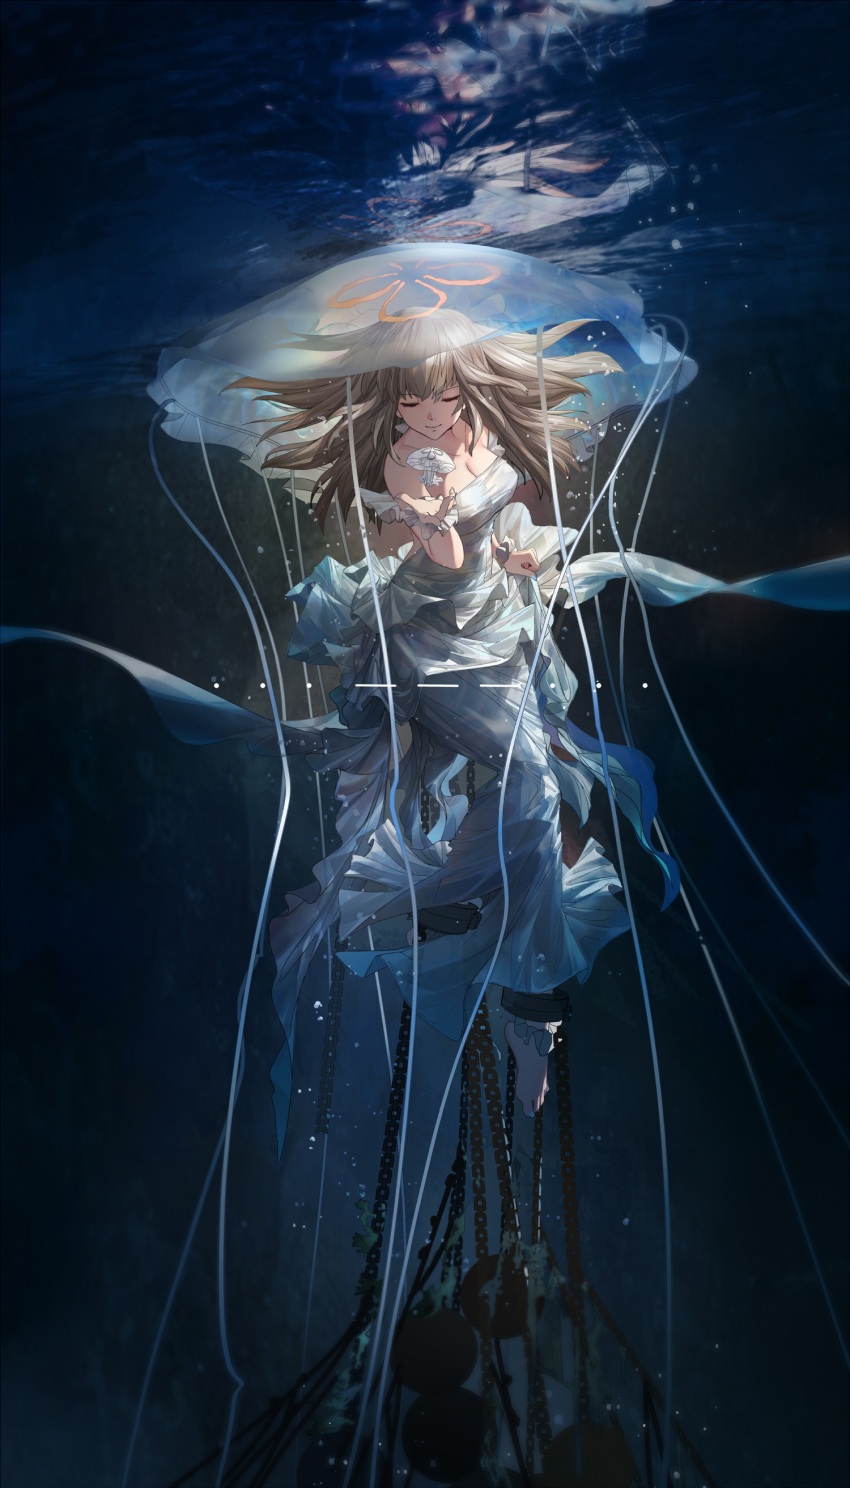 1girl absurdres afloat air_bubble bare_shoulders barefoot blonde_hair breasts bubble chains cleavage closed_eyes closed_mouth collarbone dress highres jellyfish long_dress long_hair mivit off-shoulder_dress off_shoulder original reflection restrained smile sos submerged toes underwater water white_dress